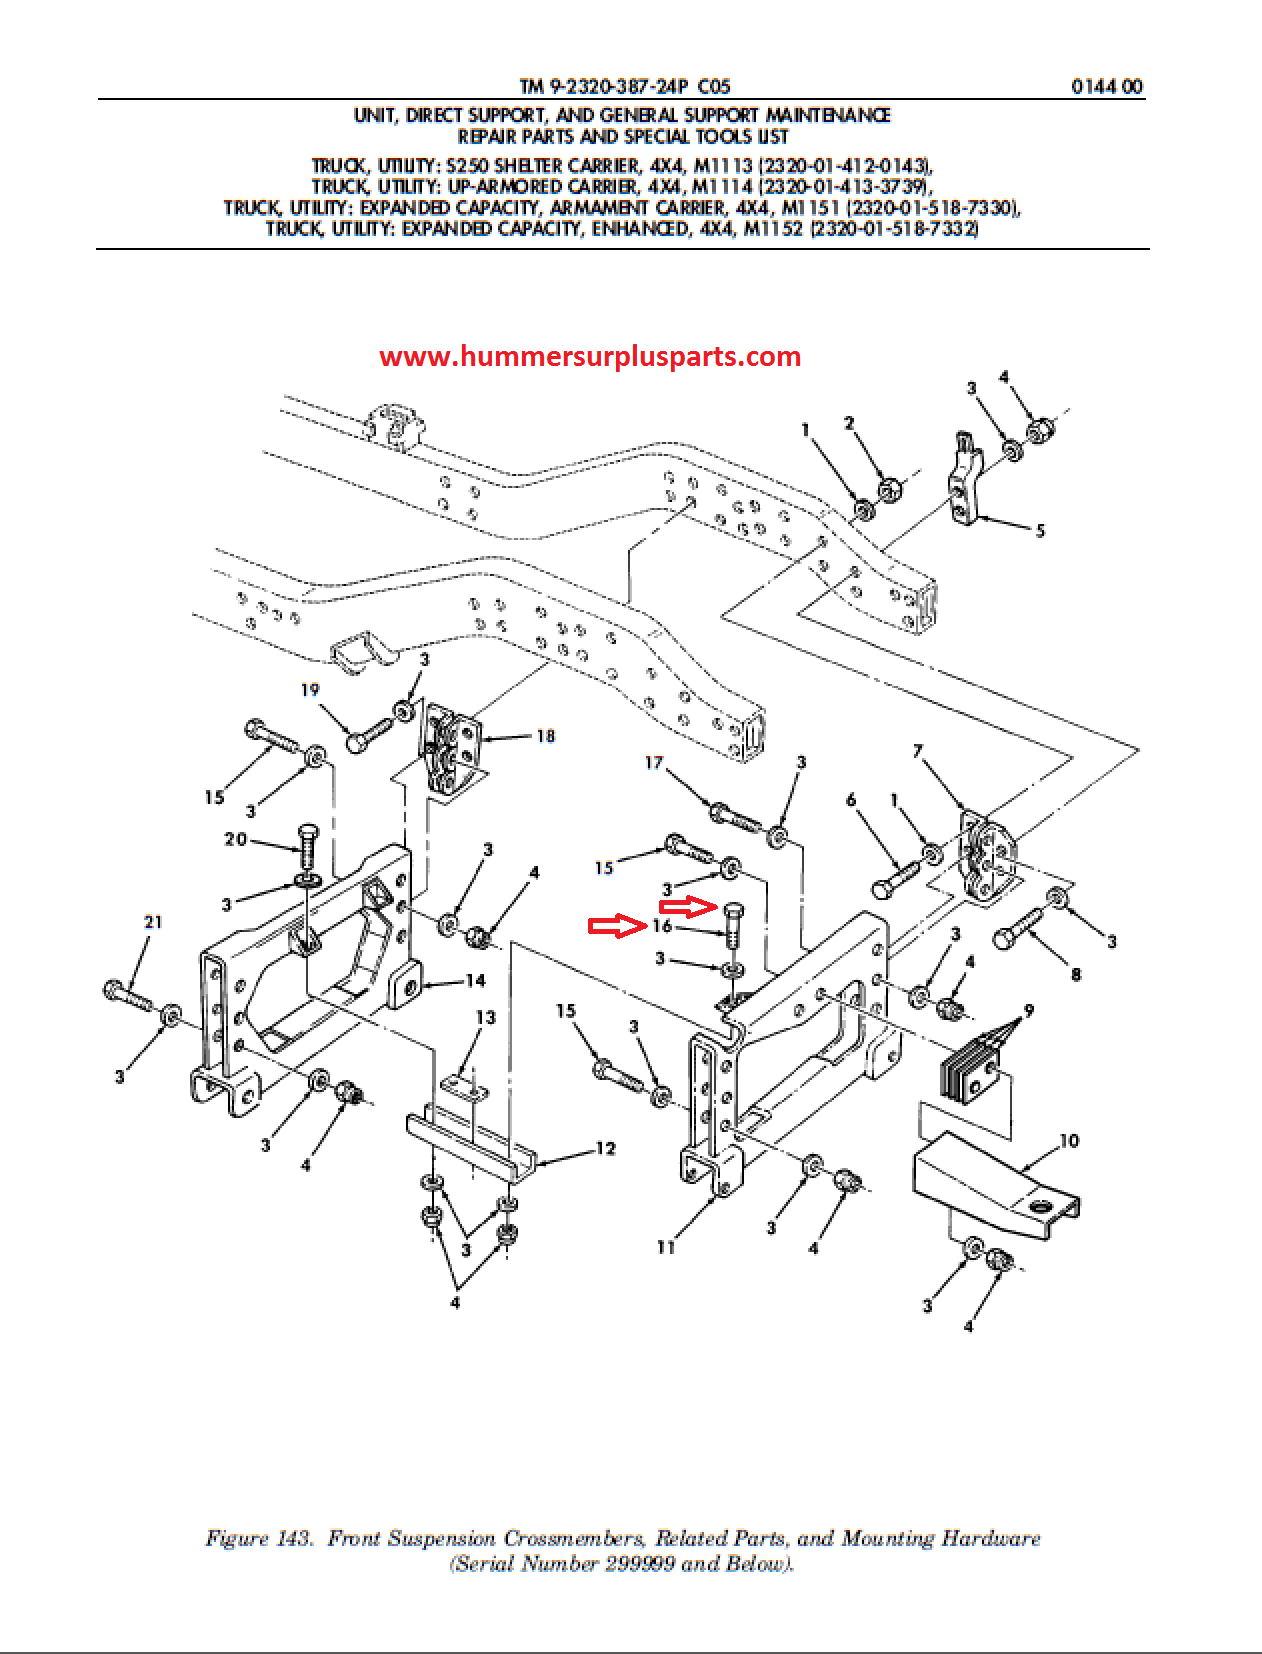 Wiring Diagrams 1998 Hummer also Hmmwv Alternator Wiring Diagram as well 2008 Cadillac Escalade Esv Wiring Diagram likewise 227388 No Power Ecm Ecm Fuse Fuel Pump Wont also Humvee Battery Location. on hummer h1 battery location